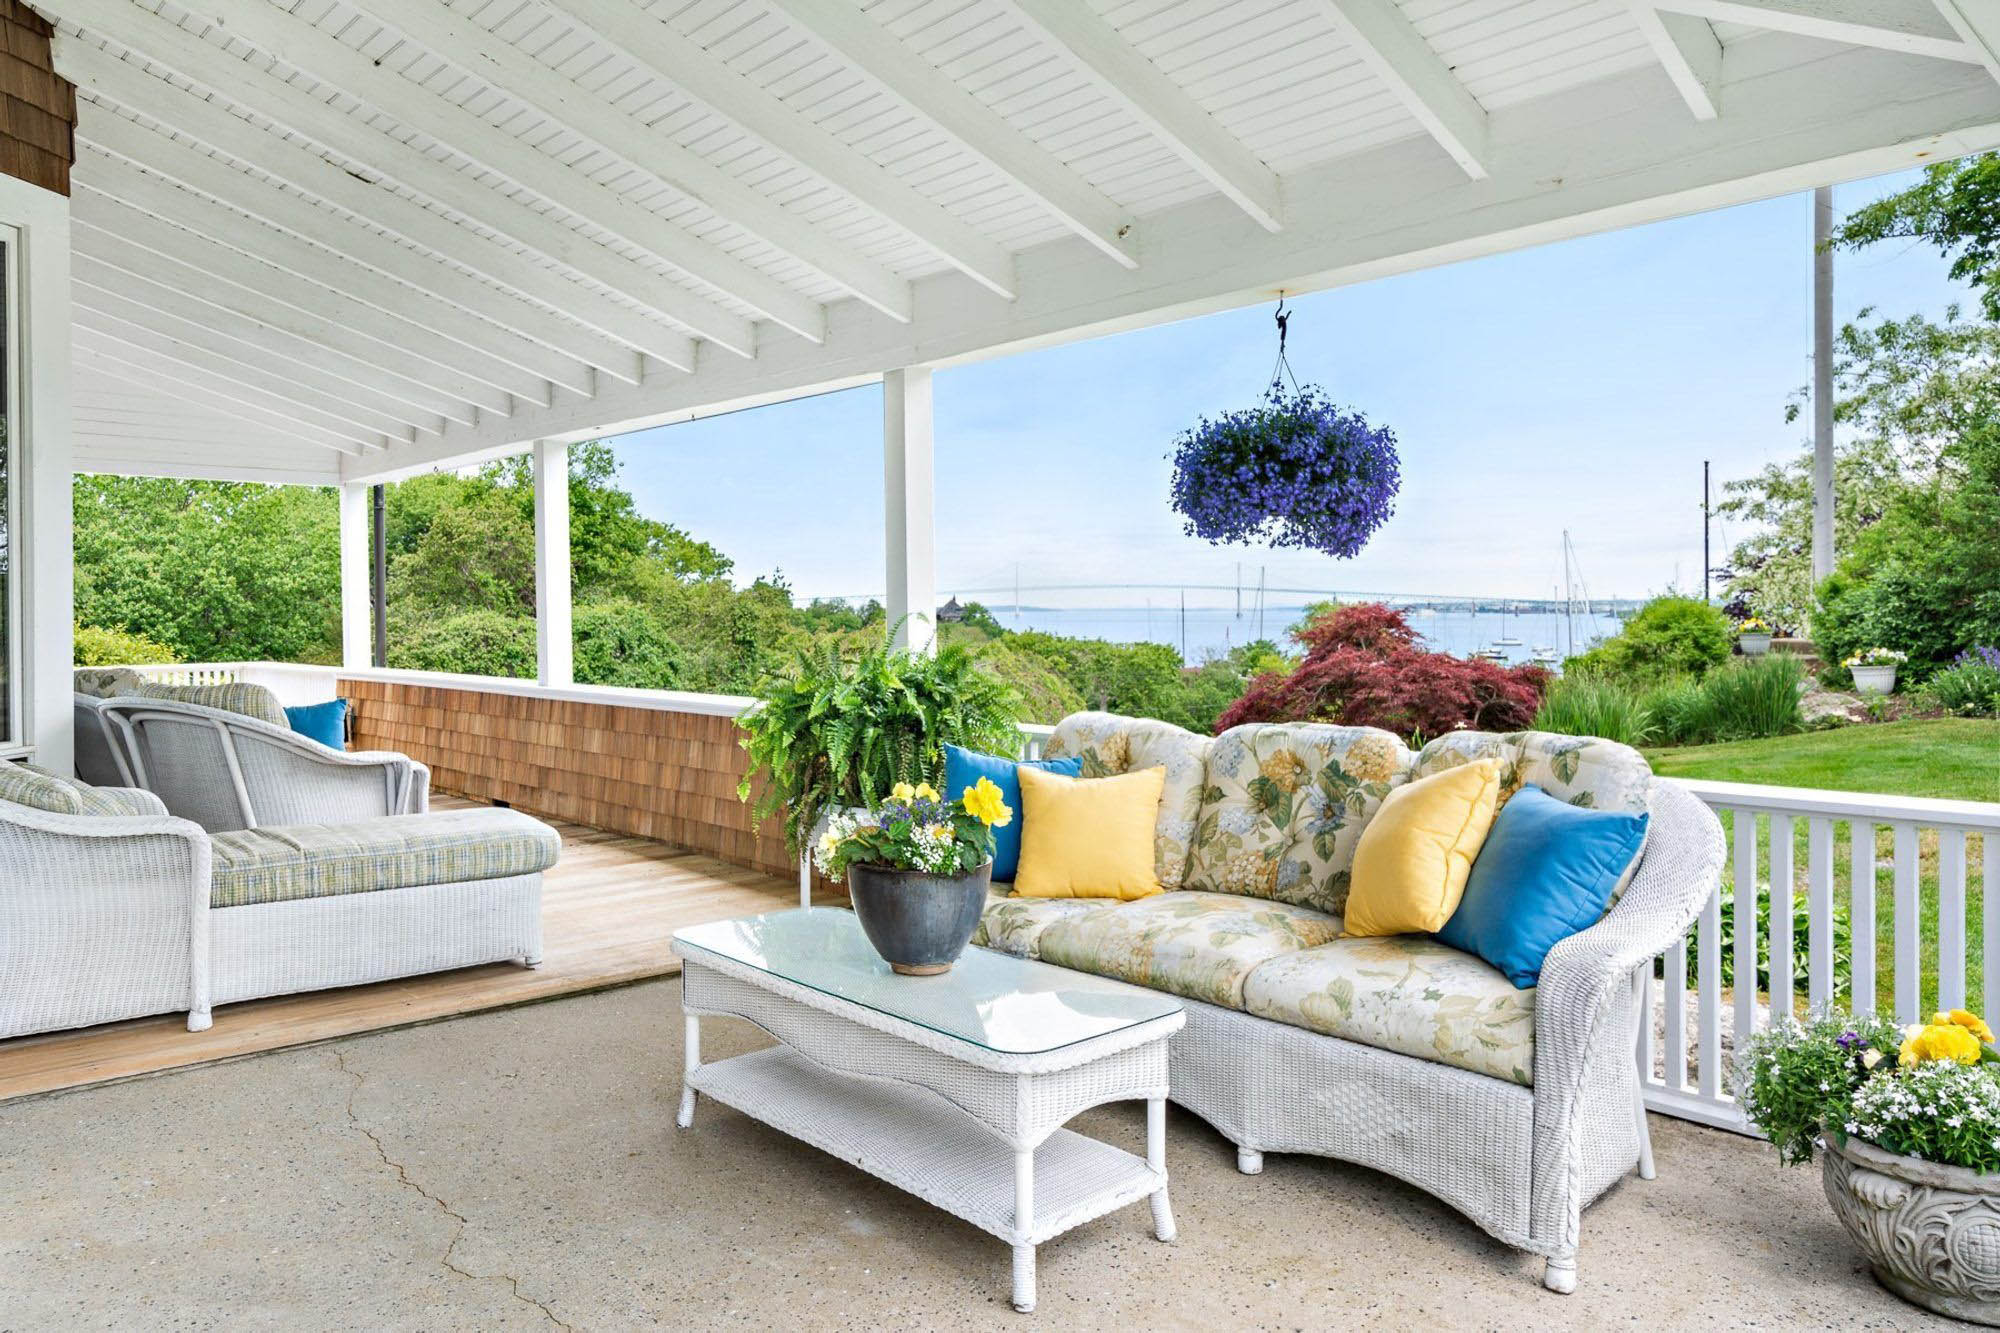 covered patio with wicker furniture and a colorful cushion print